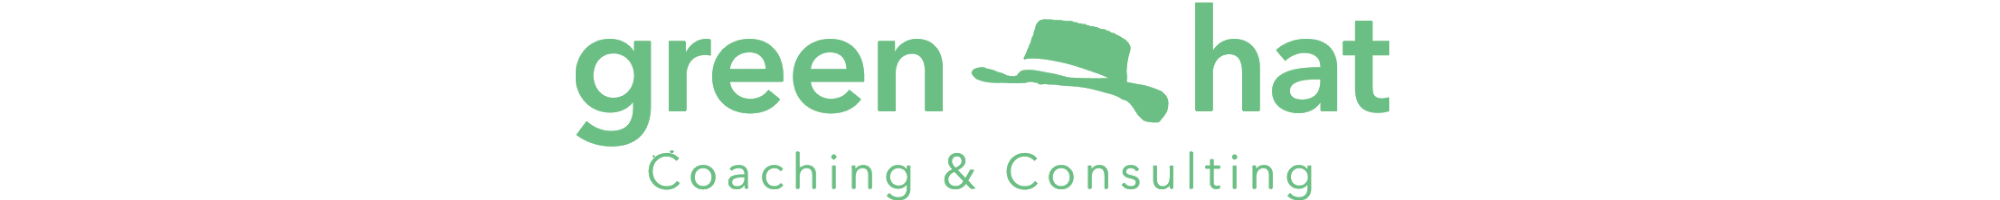 Green Hat Coaching & Consulting